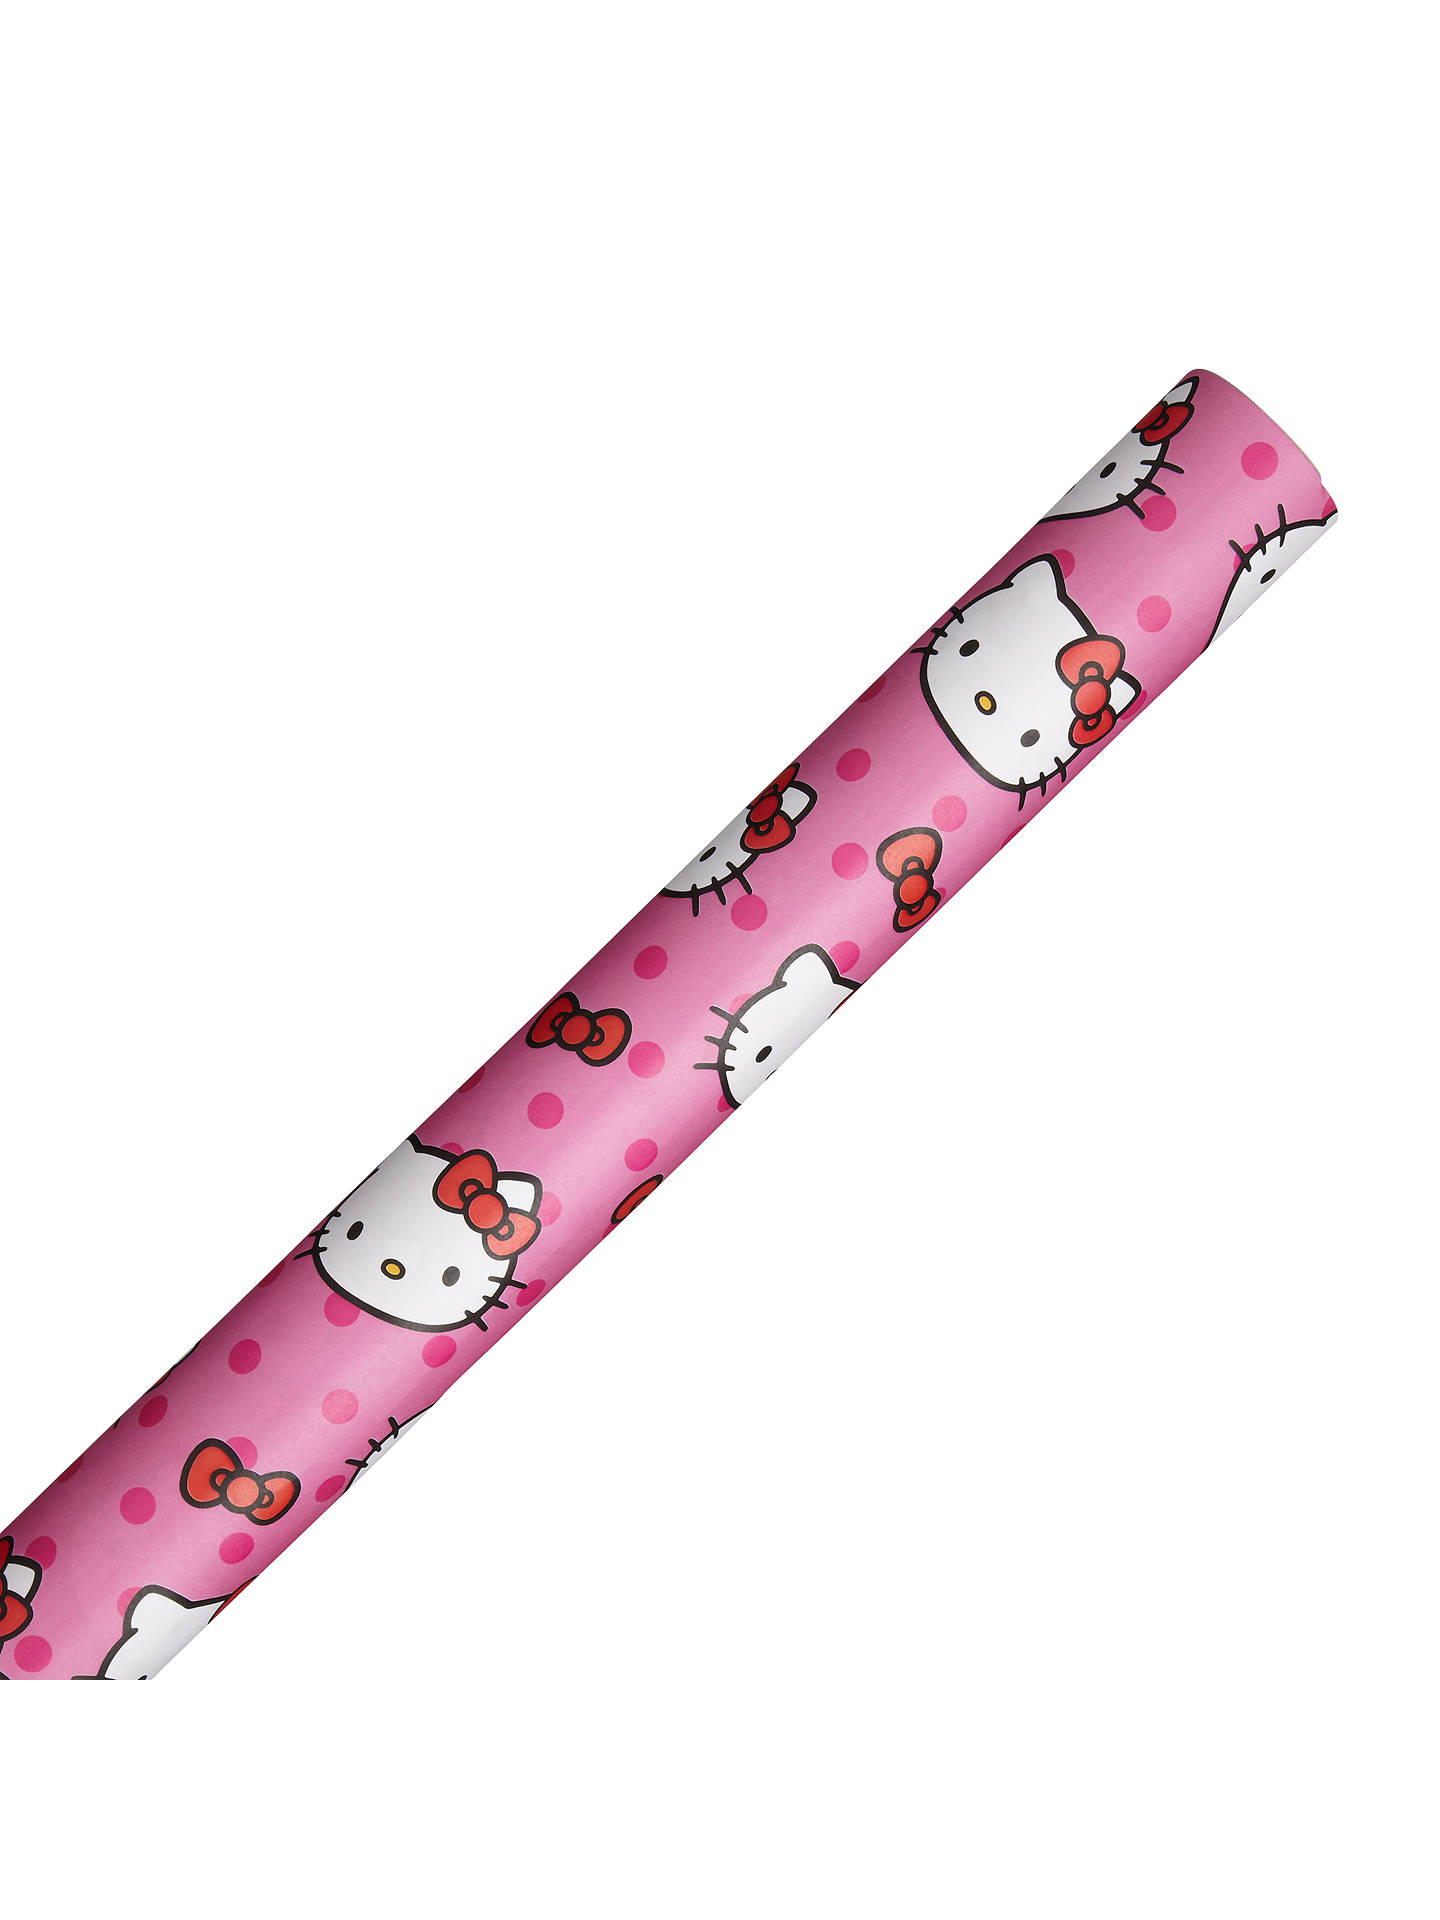 75259b38d Buy Hello Kitty Wrapping Paper, Pink, L3m Online at johnlewis.com ...